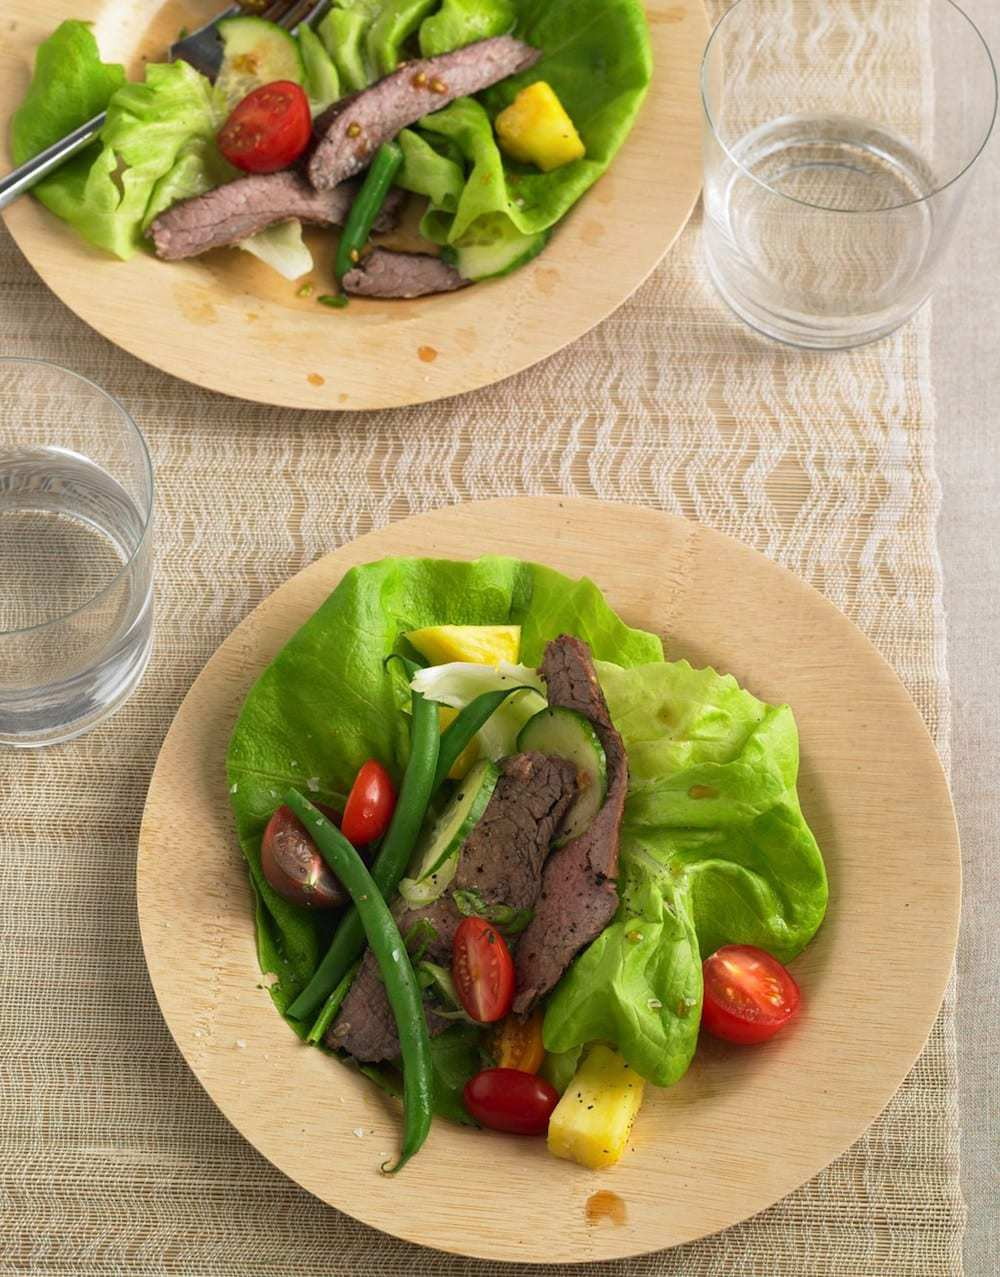 Thai Steak Salad plated